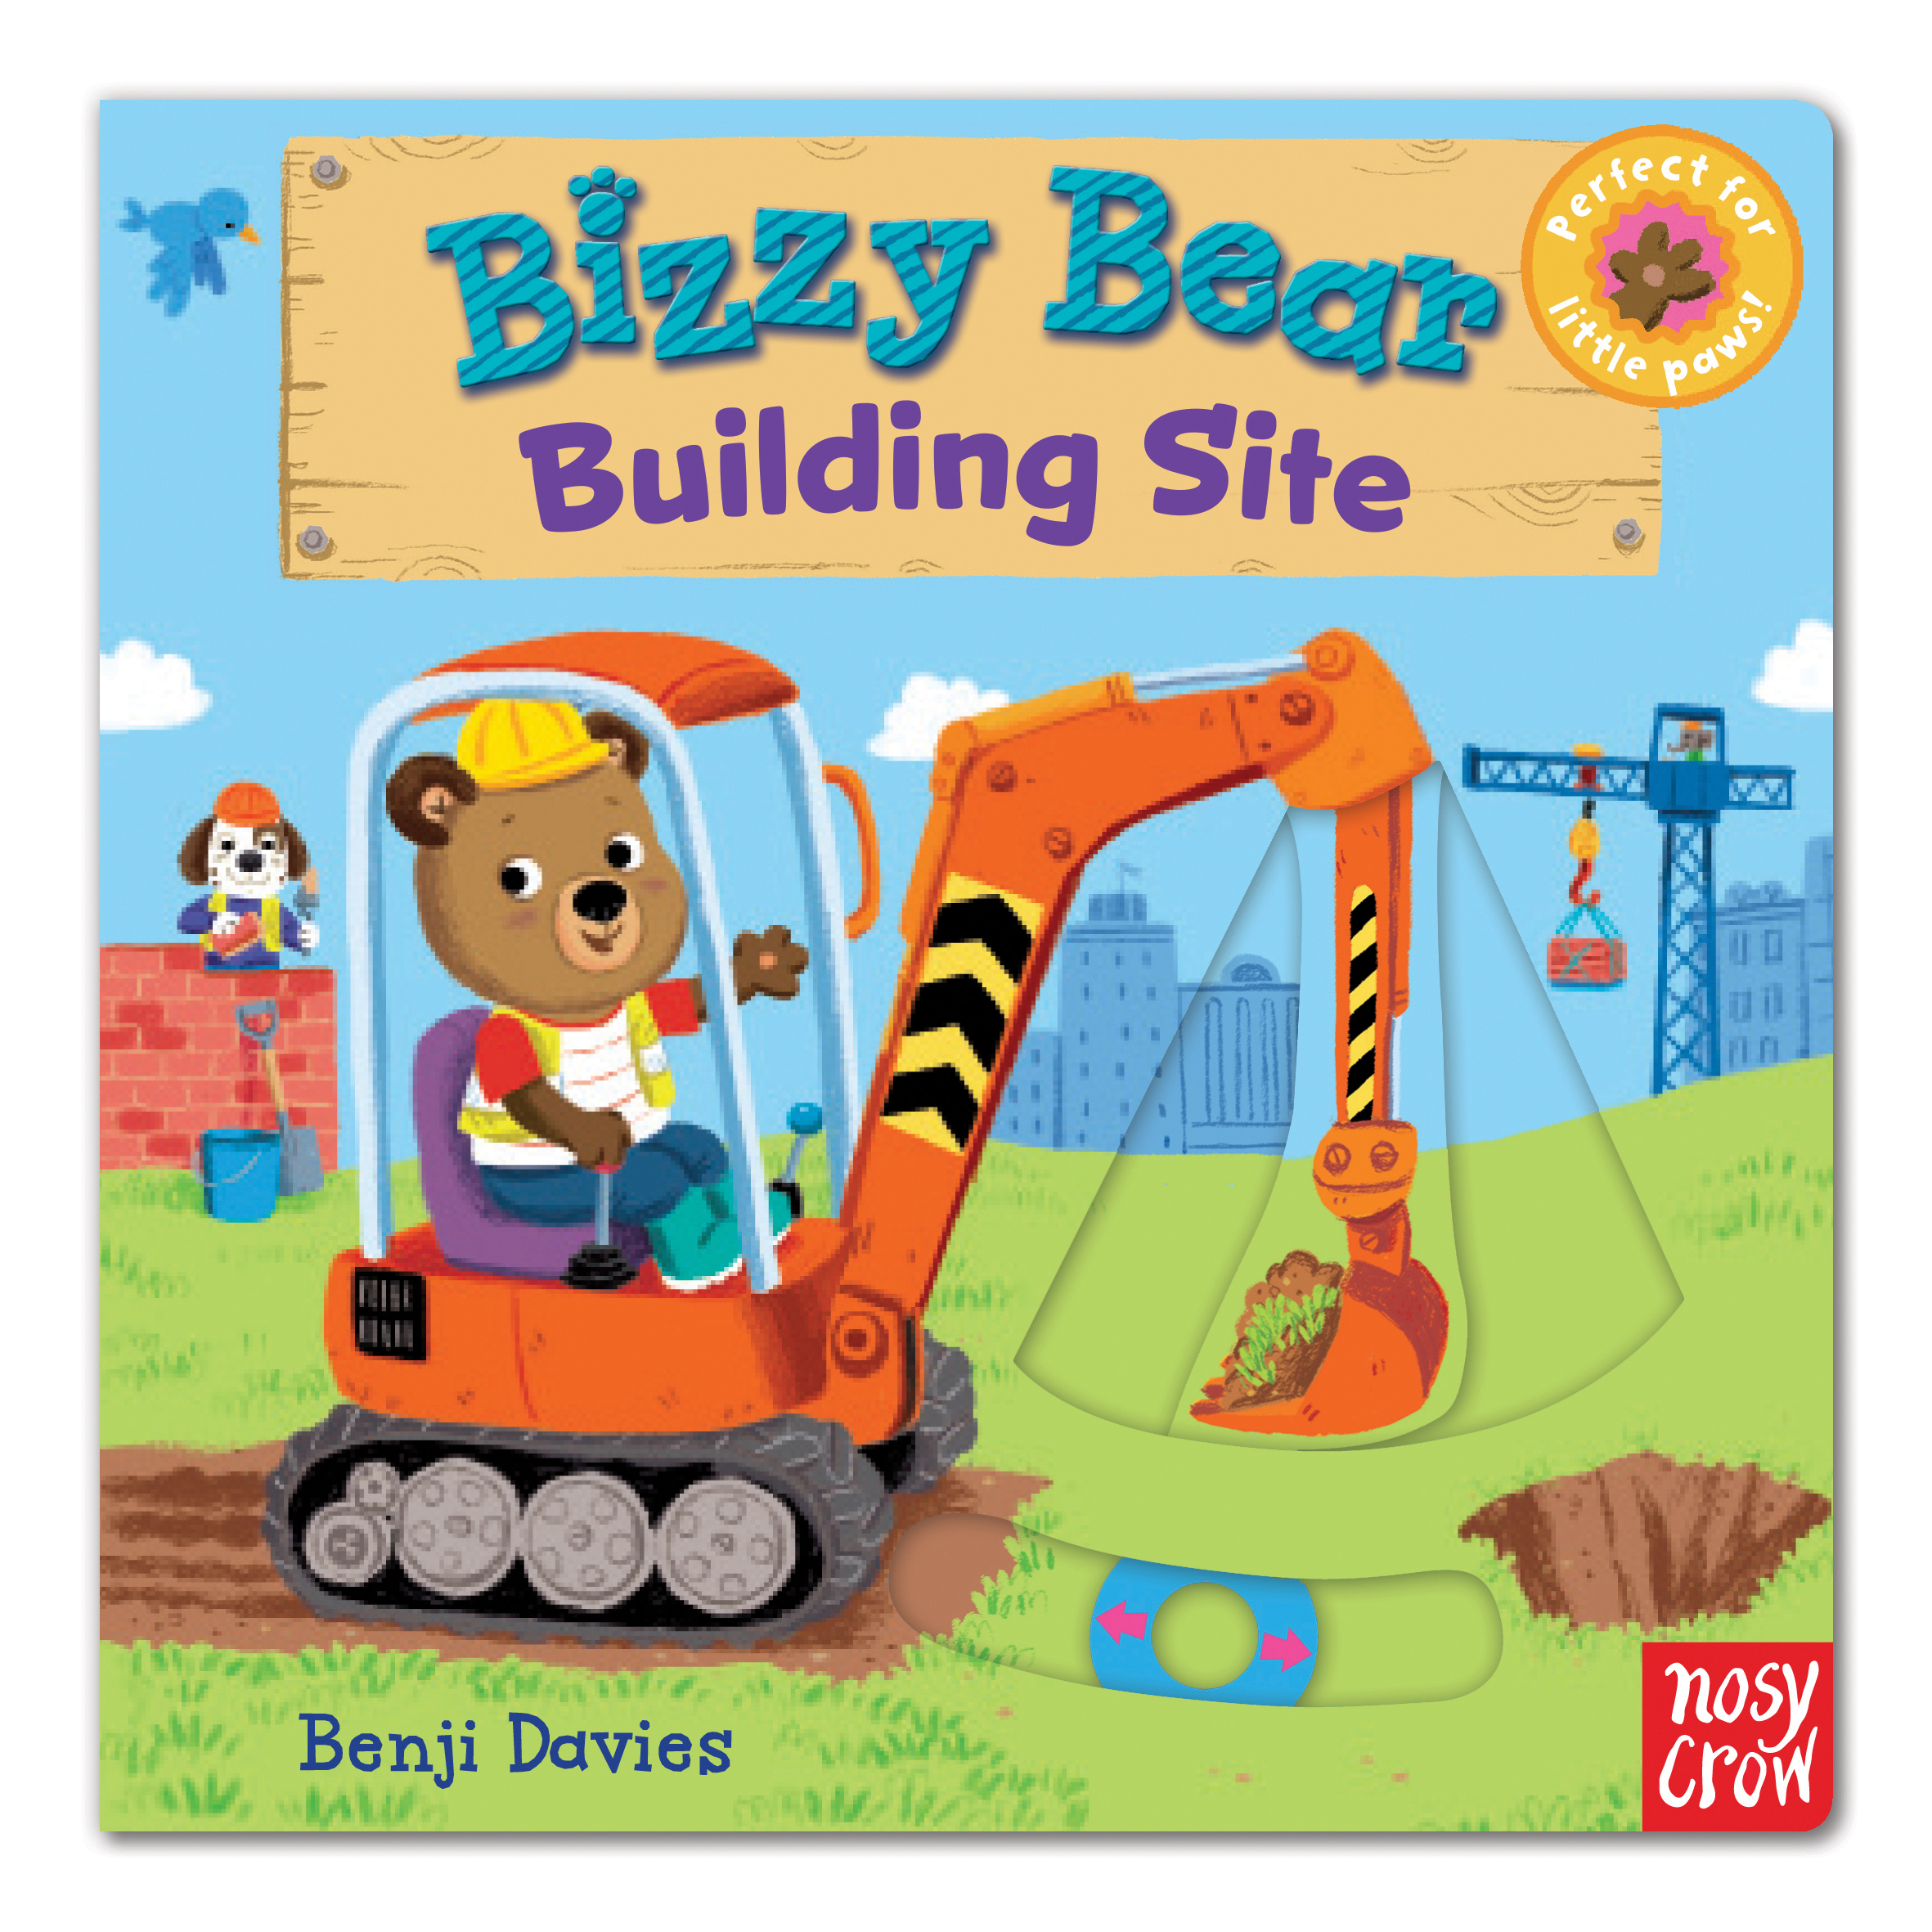 Building Site (Bizzy Bear)